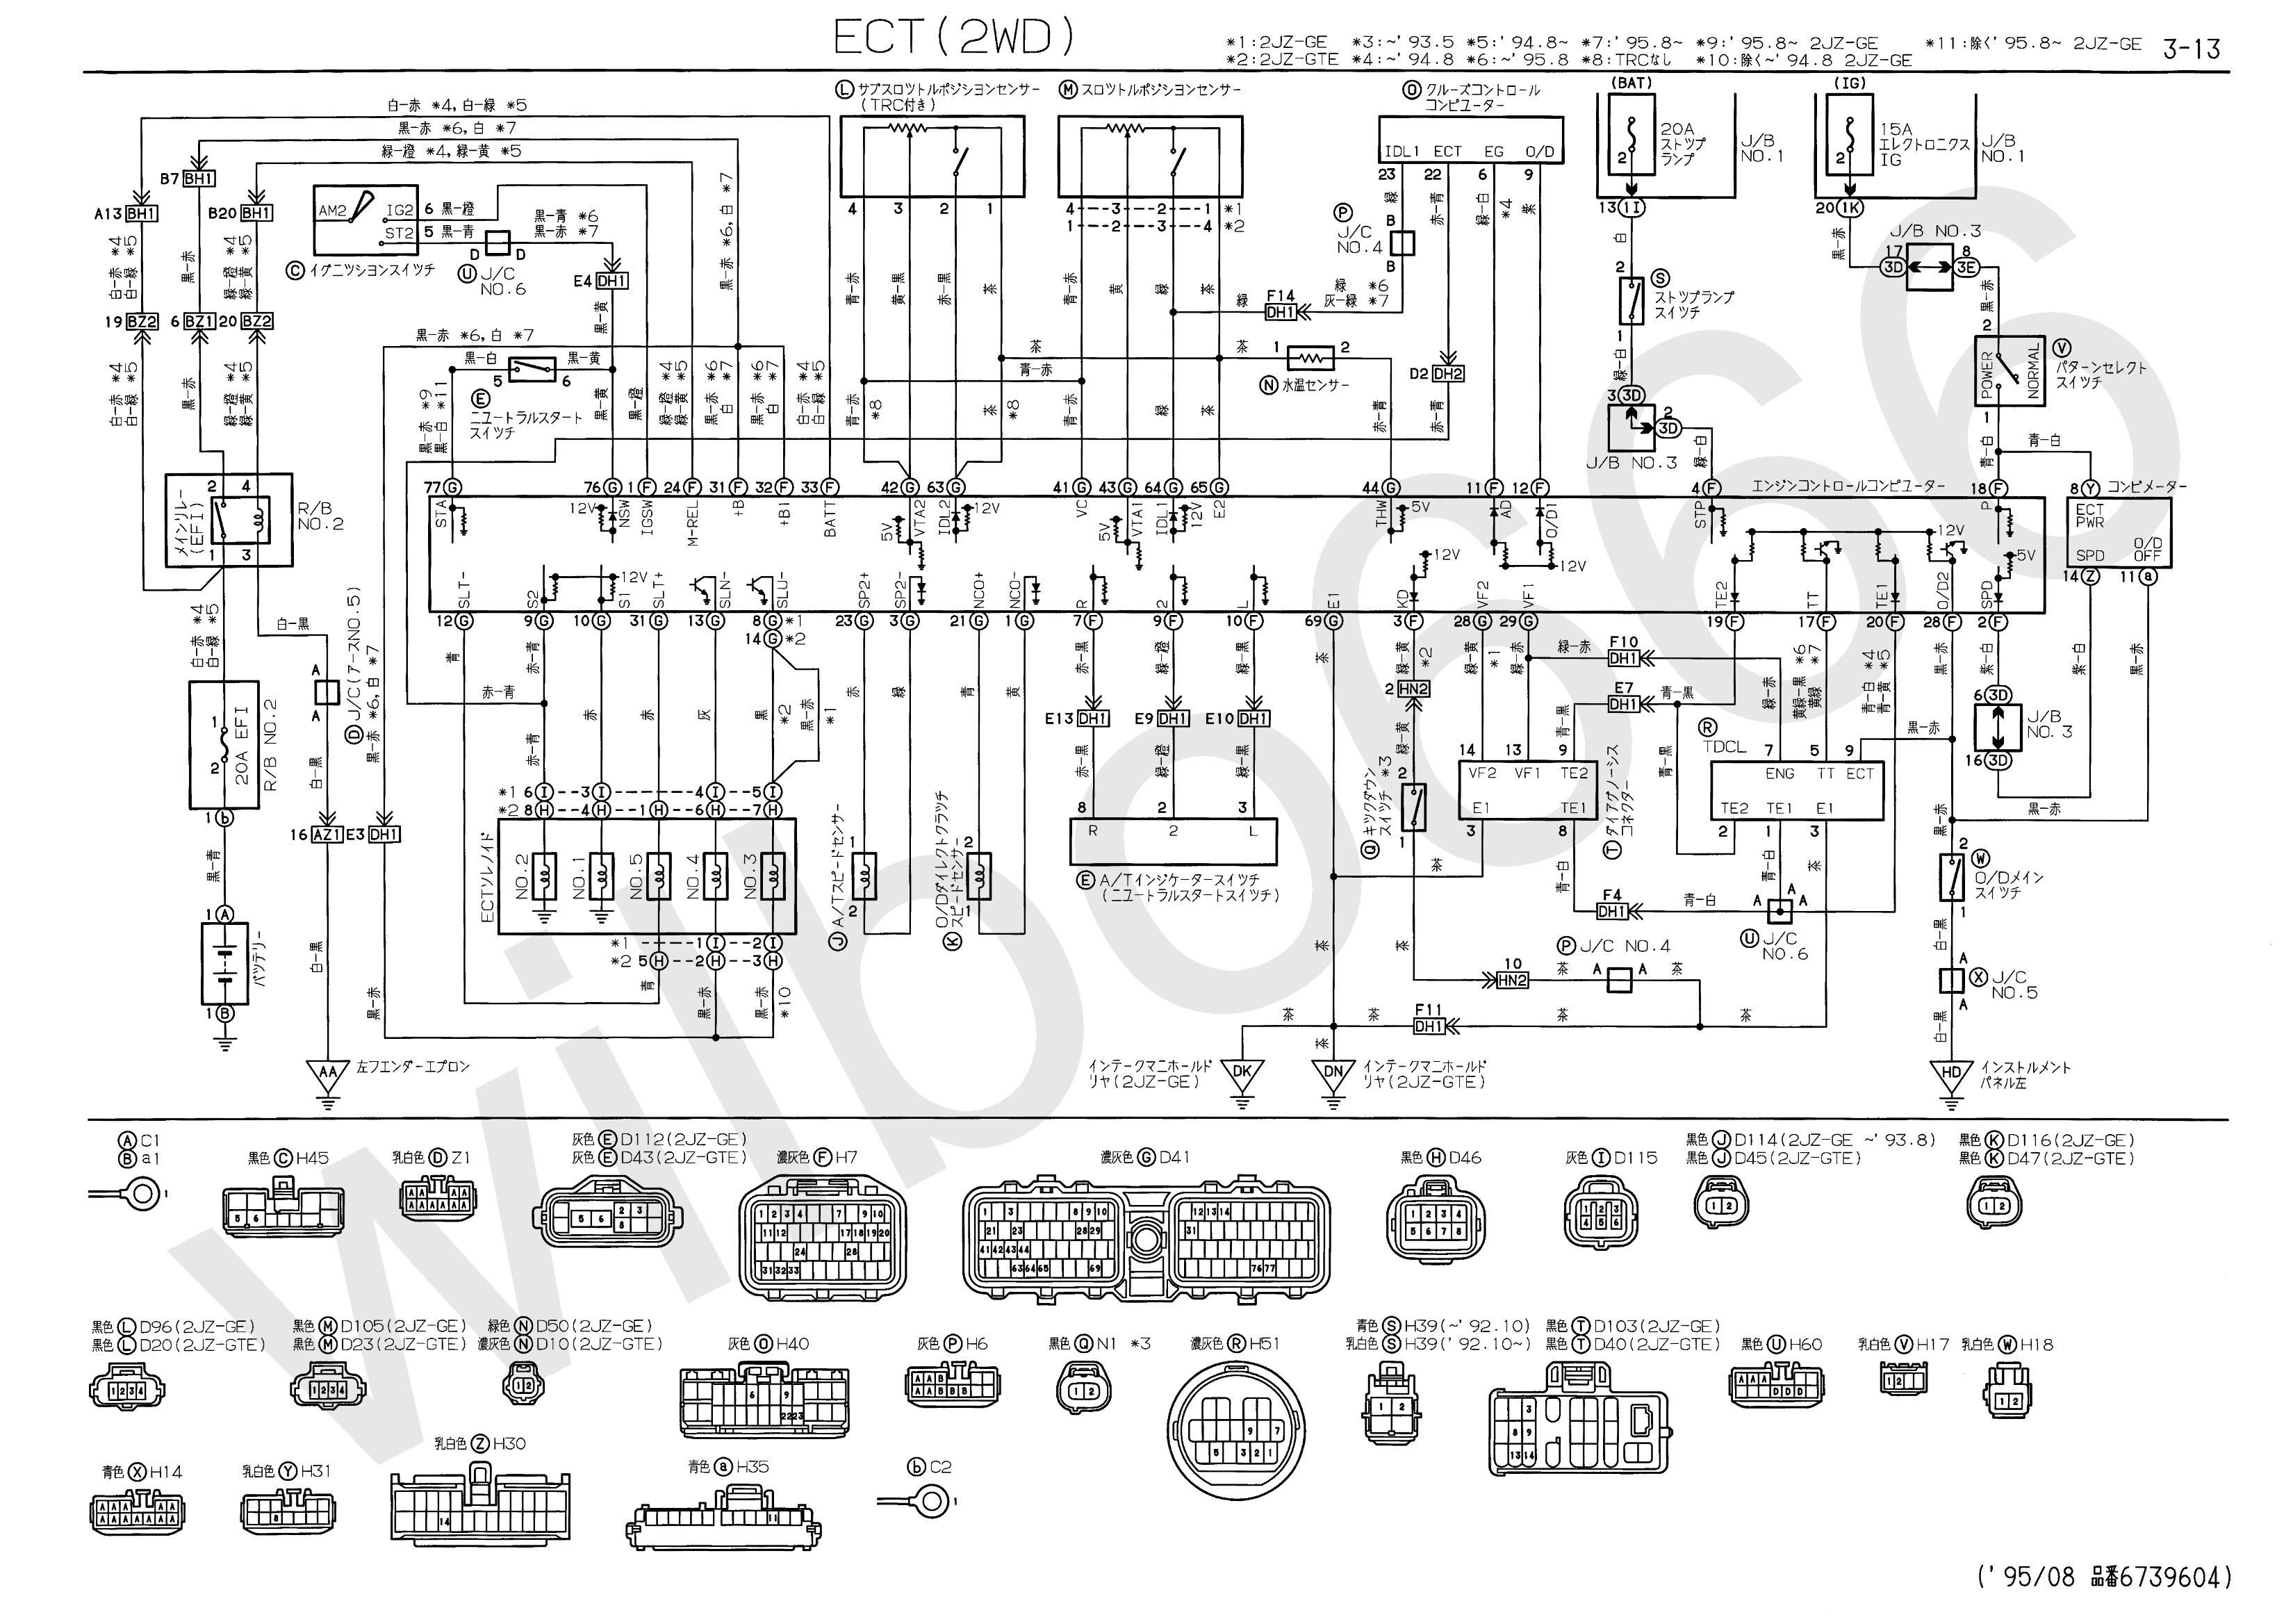 hight resolution of toyota wiring diagrams 01 charts free diagram images toyota wiring diagrams car parts download